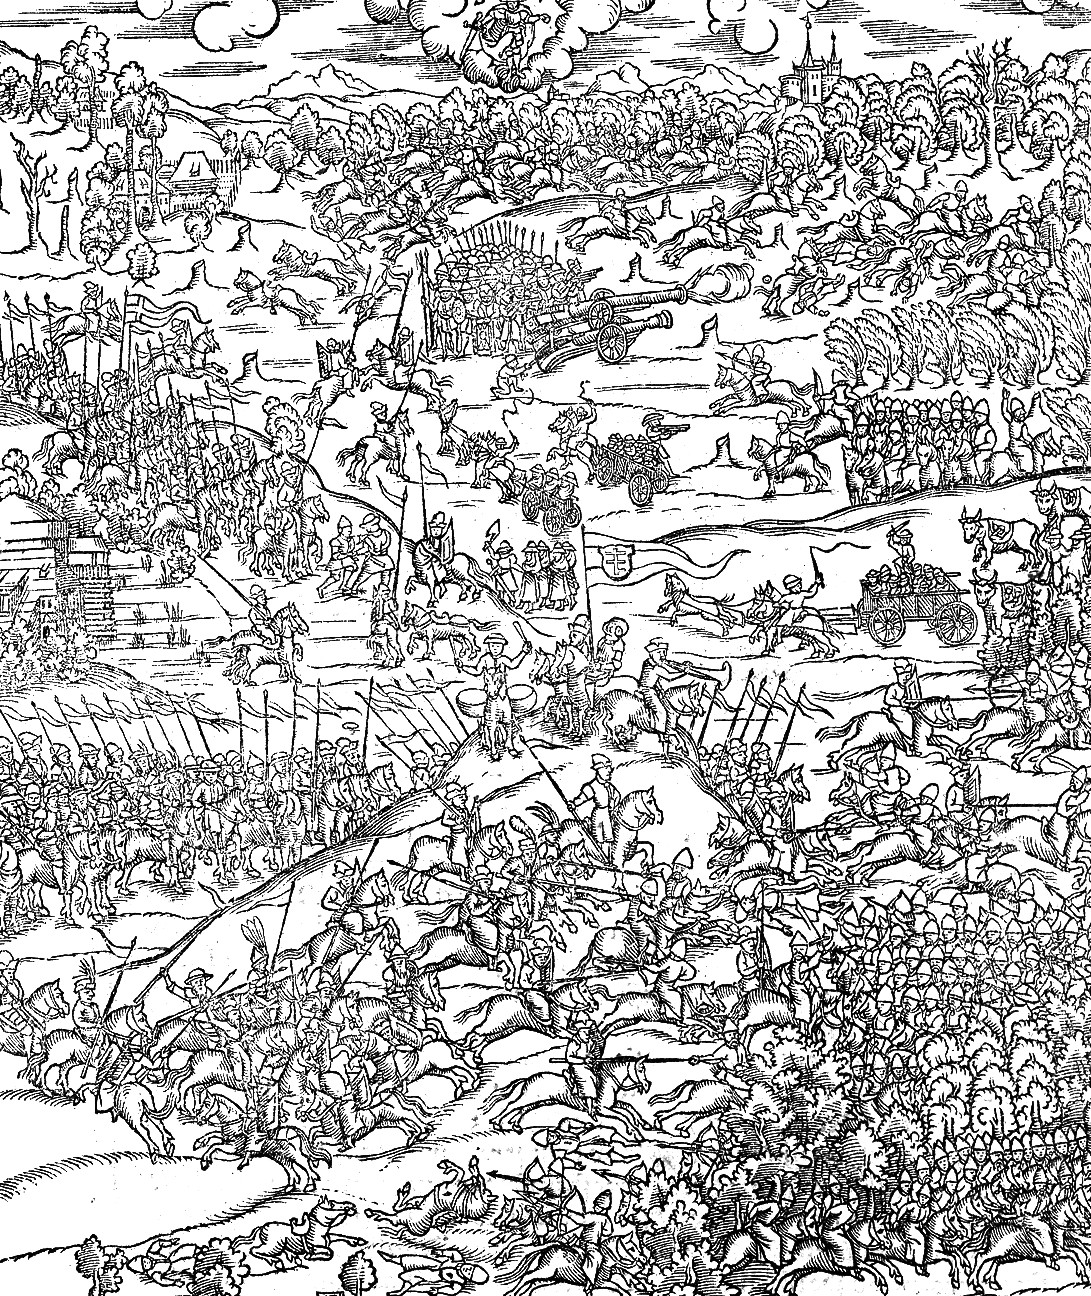 Engraving of a Lithuanian battle against the Tatars (16th century).